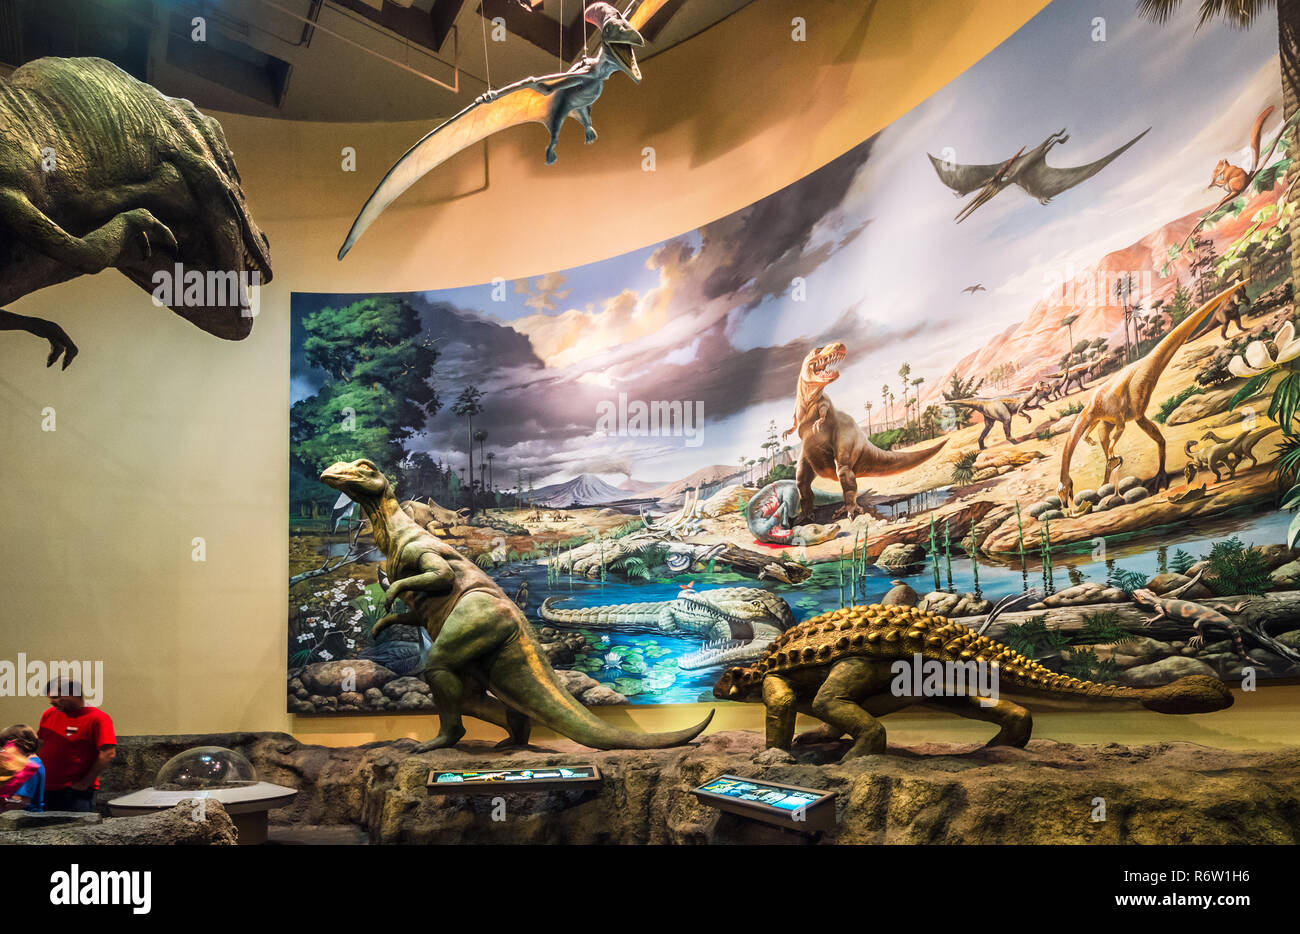 Visitors walk through the dinosaur gallery at Fernbank Museum of Natural History, May 23, 2014, in Atlanta, Georgia. - Stock Image